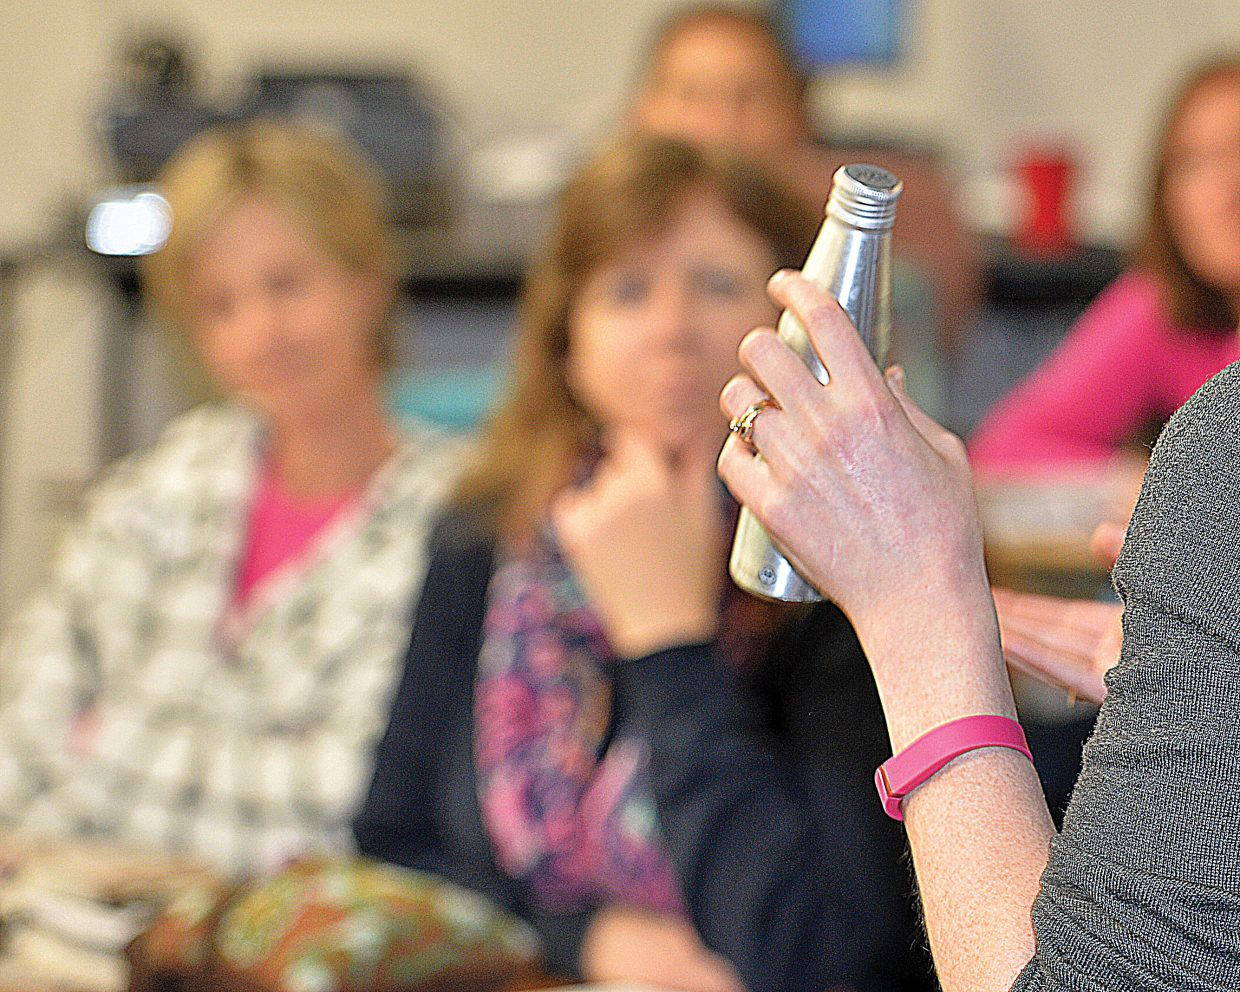 Kate Elkins from Grand Futures Prevention Coalition holds a bottle of marijuana-infused drink while speaking to the Parent Information Committee about marijuana during a recent meeting. She helped educate the parents about the new laws regarding marijuana and how it impacts students and the schools. She also reviewed the many different products, including this marijuana infuses drink, that are offered by legal marijuana shops in Steamboat, and what parents need to learn about when it comes to dealing with their children and marijuana.